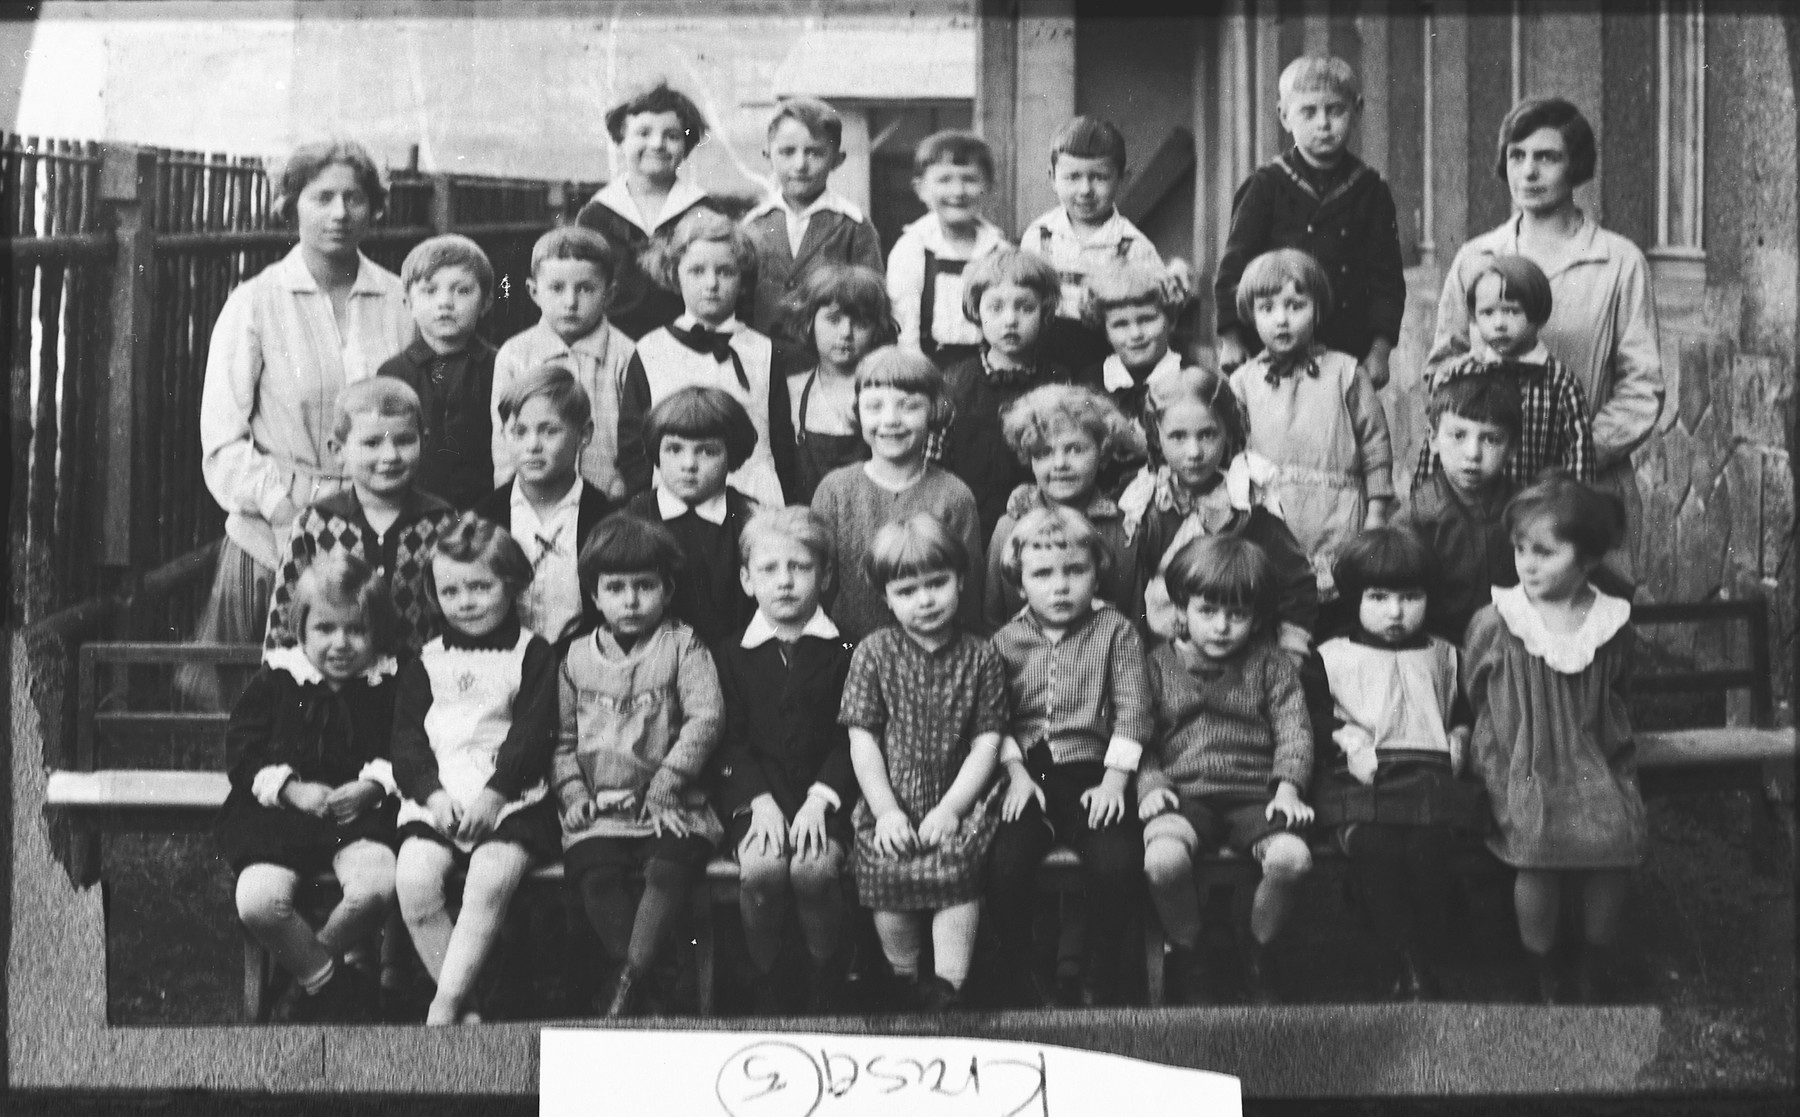 Group portrait of Czech and Jewish pupils in an elementary school in Prague.  Among those pictured is Edgar Krasa (second row from the front, second from the left).